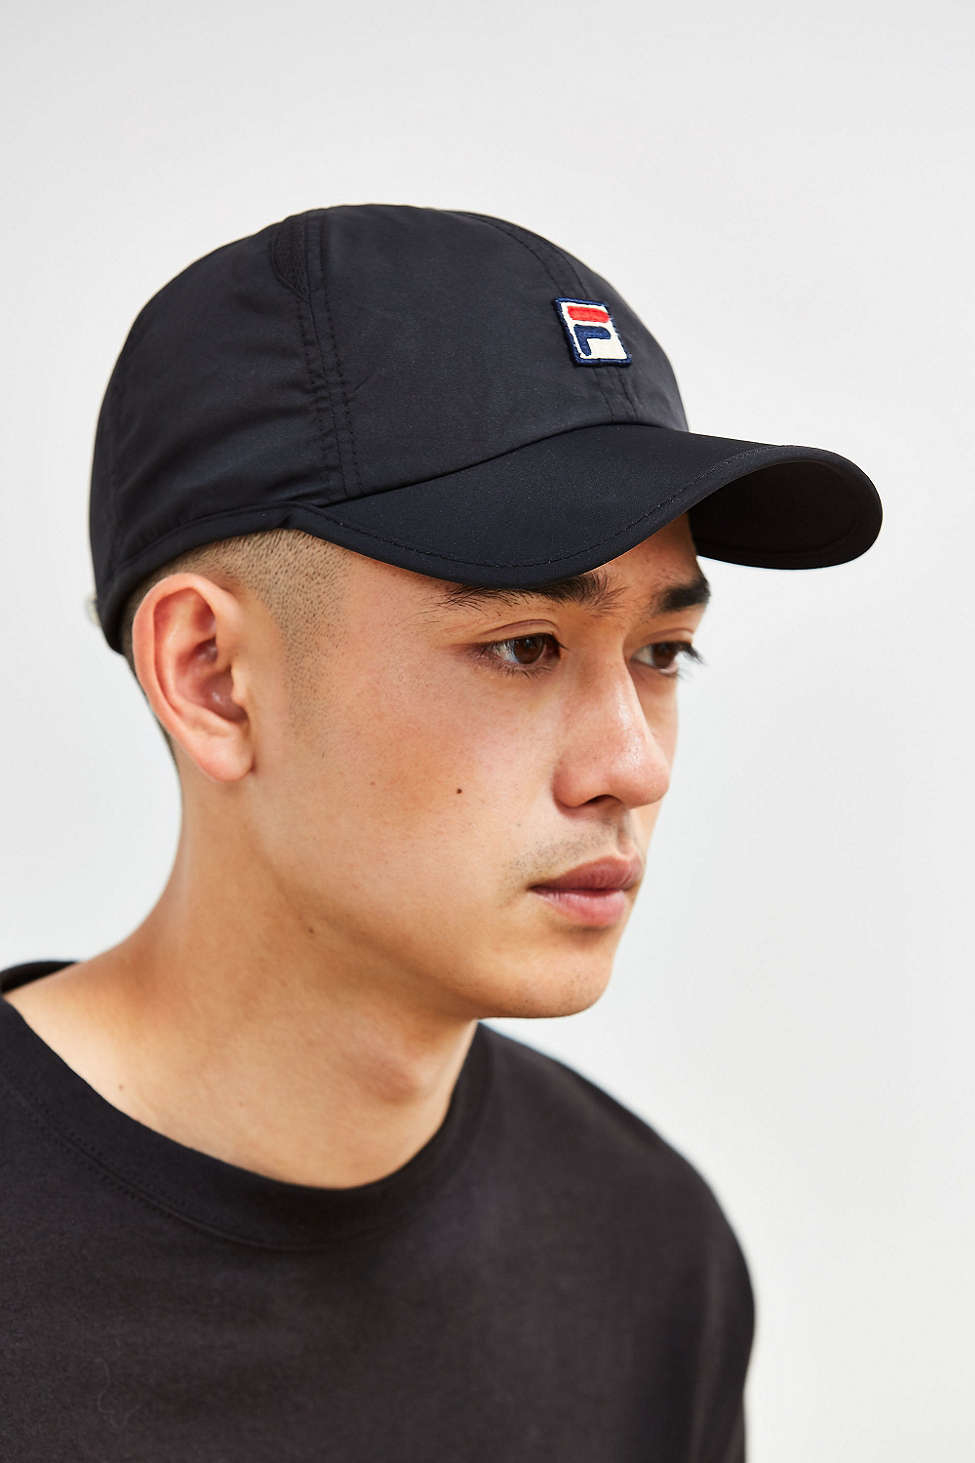 Lyst - Fila Runner Baseball Hat in Black for Men ec4f649f79d